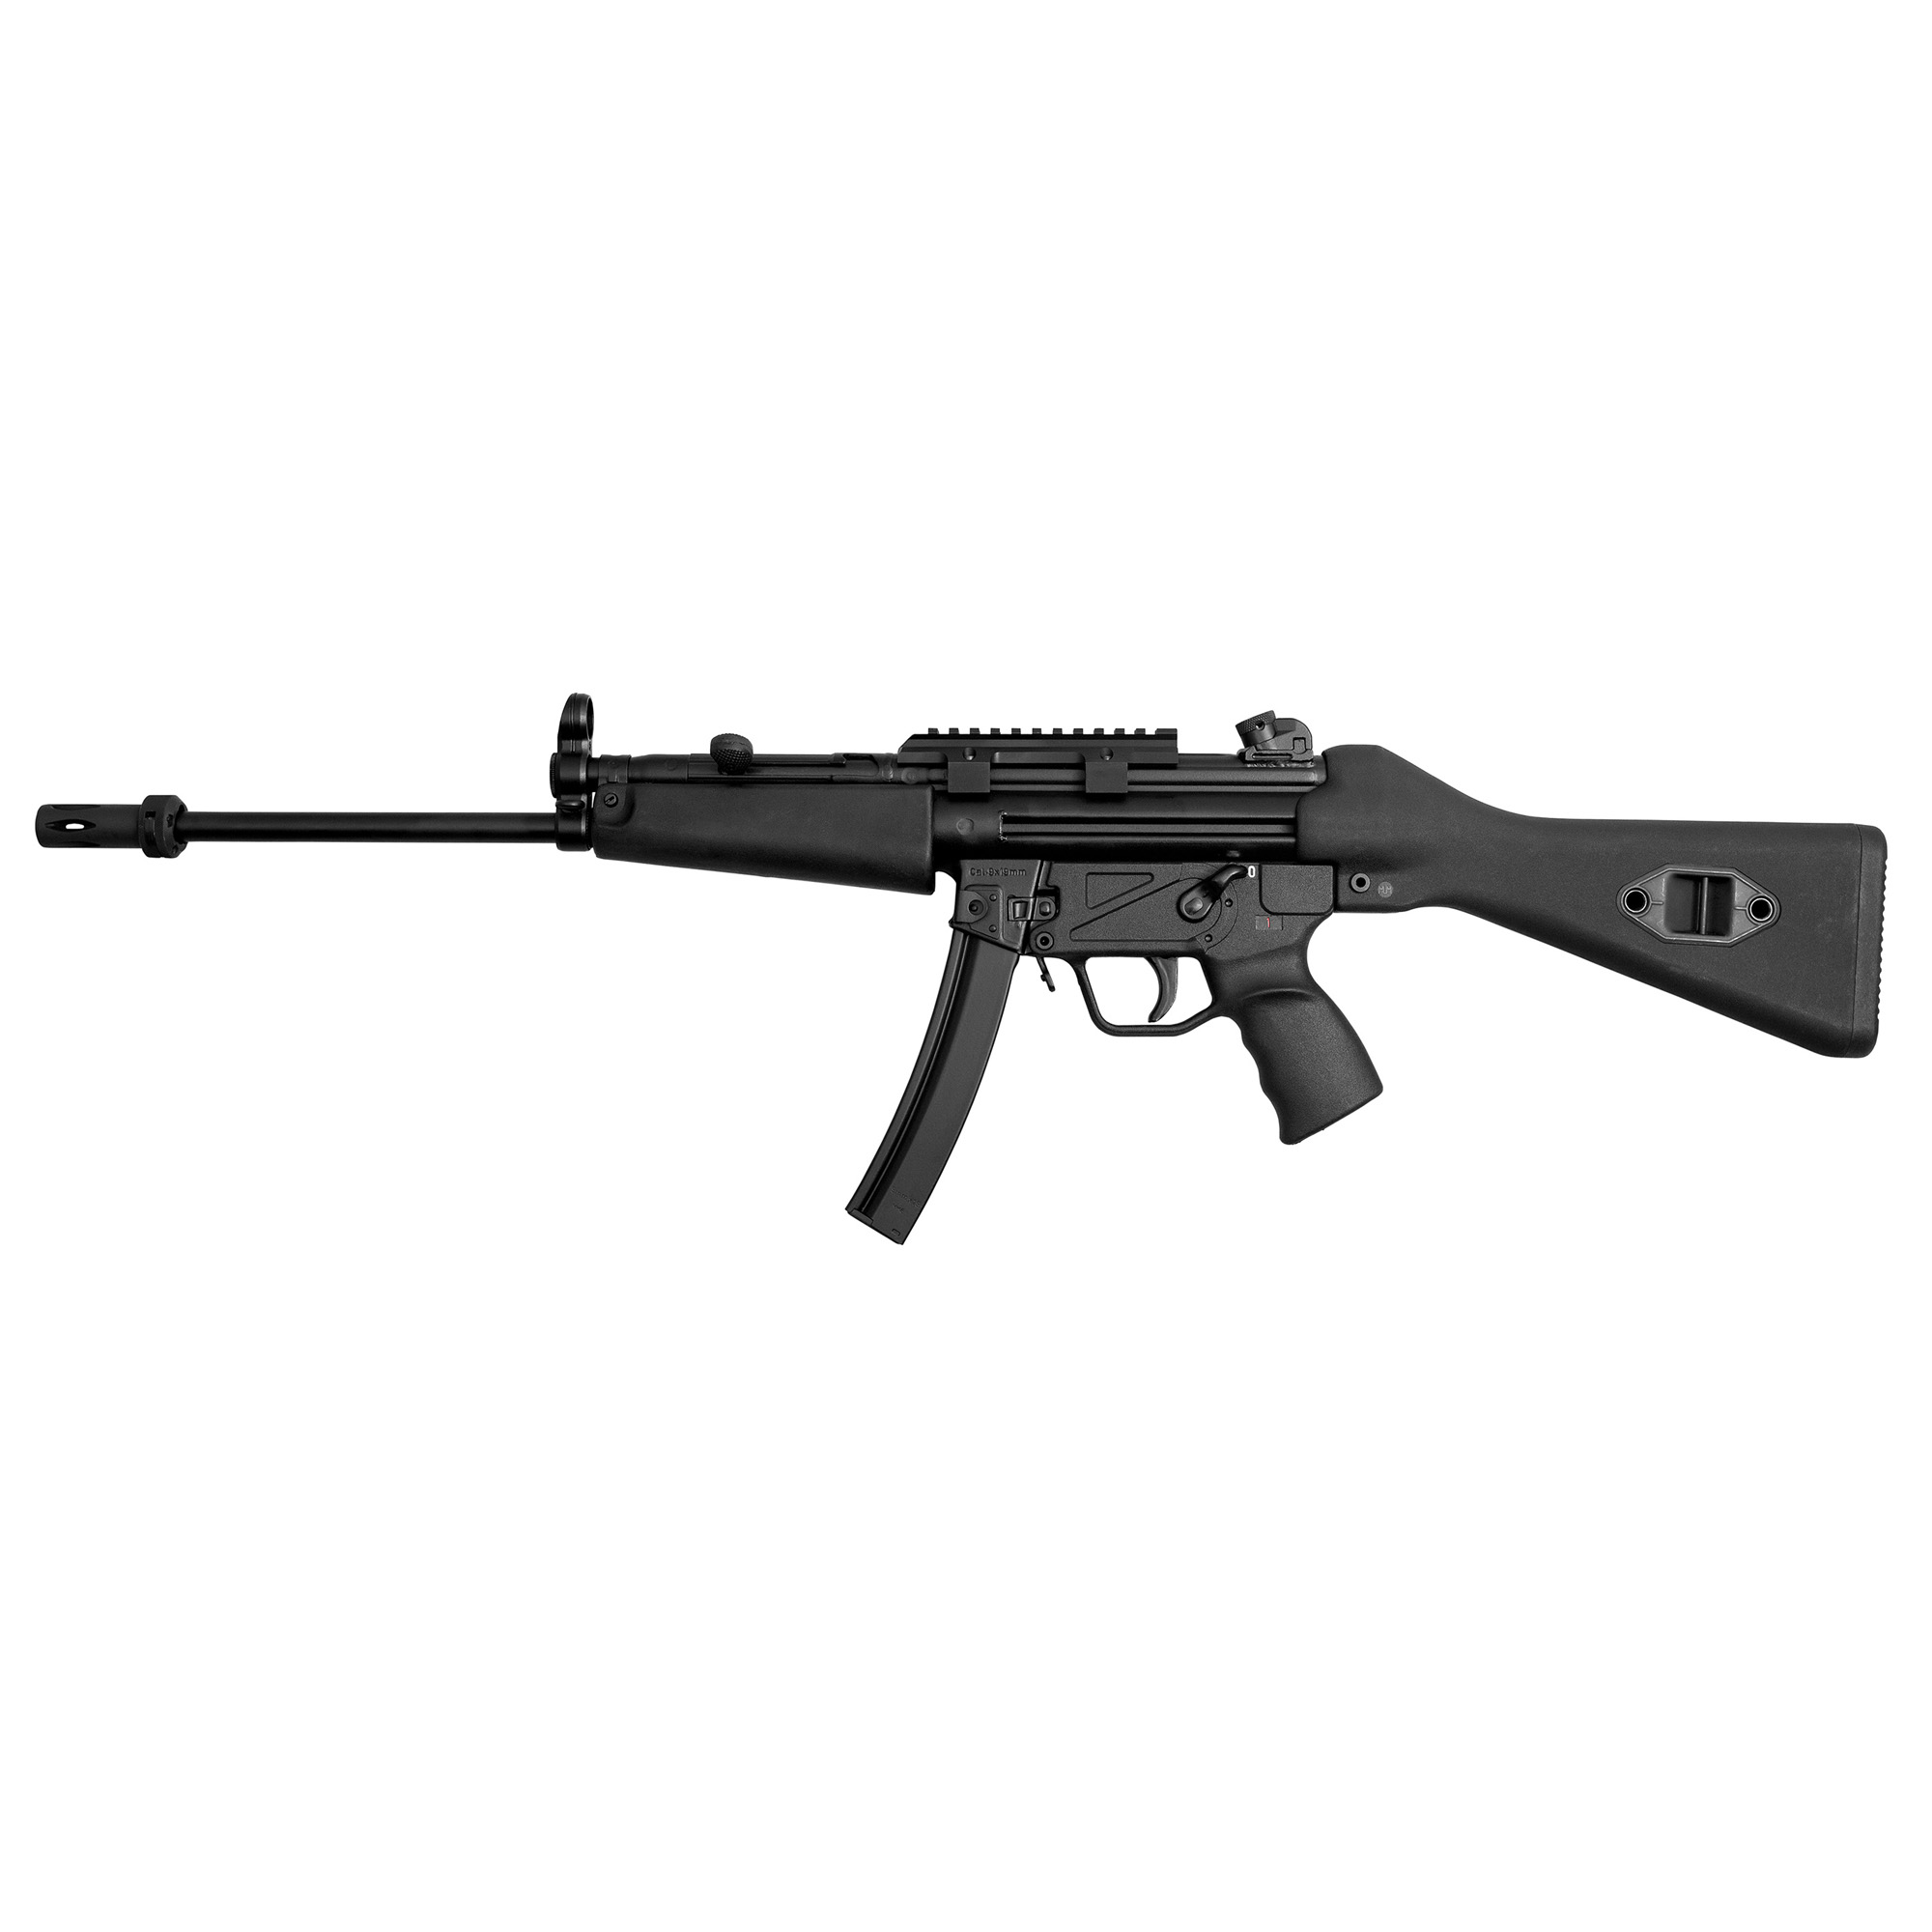 """The Z-5 Rifle is a longer-barreled version of Zenith's Z-5RS"""" configured as a non-sporterized carbine. It is a good option for those who would like to own a Z-5RS SBR"""" but are not willing to incur the expense or hassle of registration. Equipped with a 3-lug-mounted flash hider"""" a tropical wide forearm"""" and an A2 fixed stock"""" it is covered by a five-year warranty and is fully 922(r) compliant.* It ships in an MKE hard case with a Picatinny optic rail"""" three magazines"""" a military-style sling"""" two extra takedown pins"""" a cleaning kit"""" and a user manual. *U.S.-made parts include: flash hider"""" charging handle"""" handguard"""" stock"""" hammer"""" trigger and sear."""